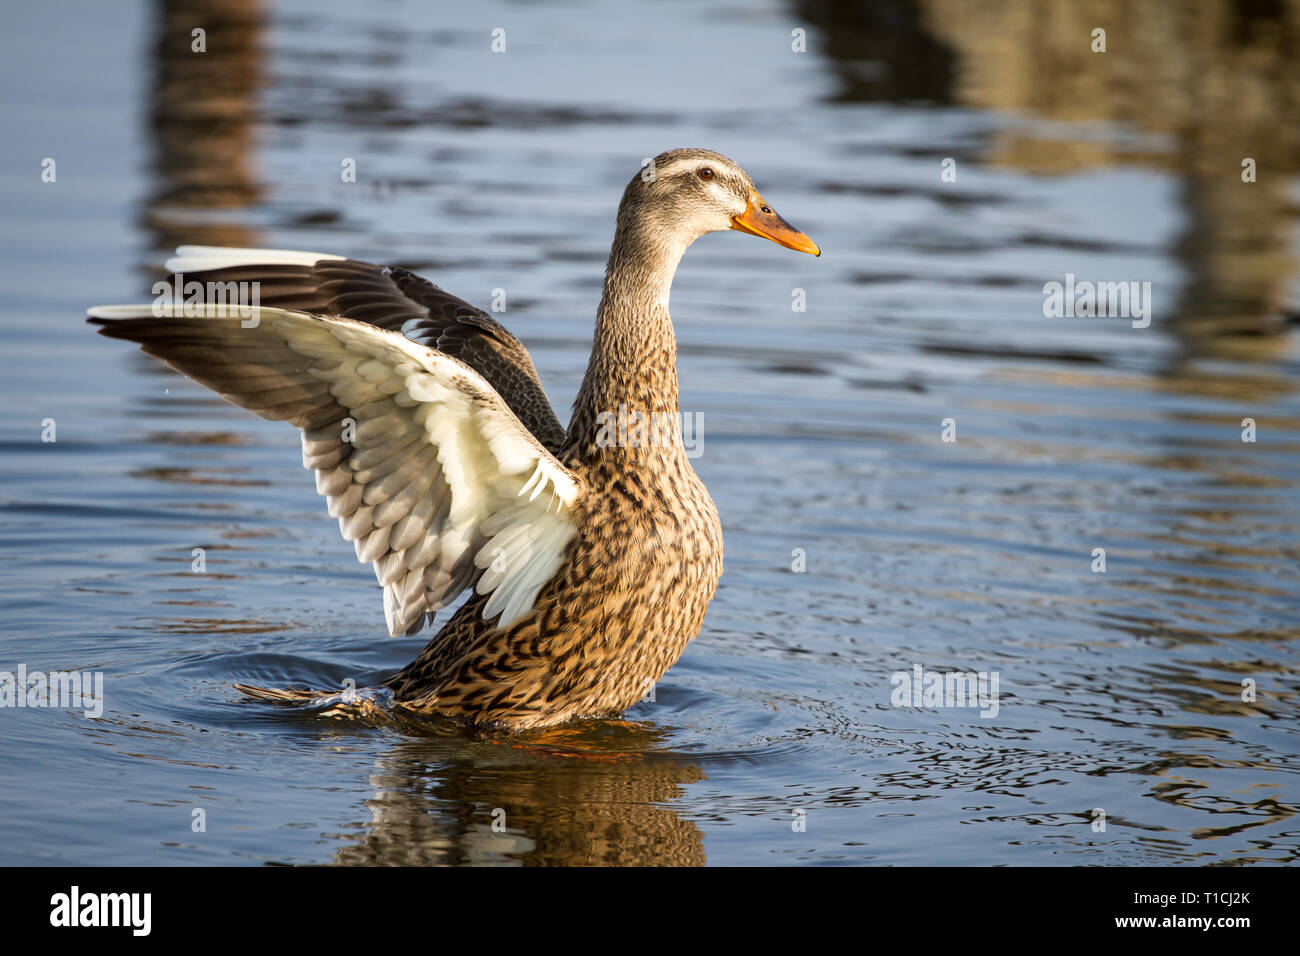 Female duck flapping wings (Anatidae) - Stock Image